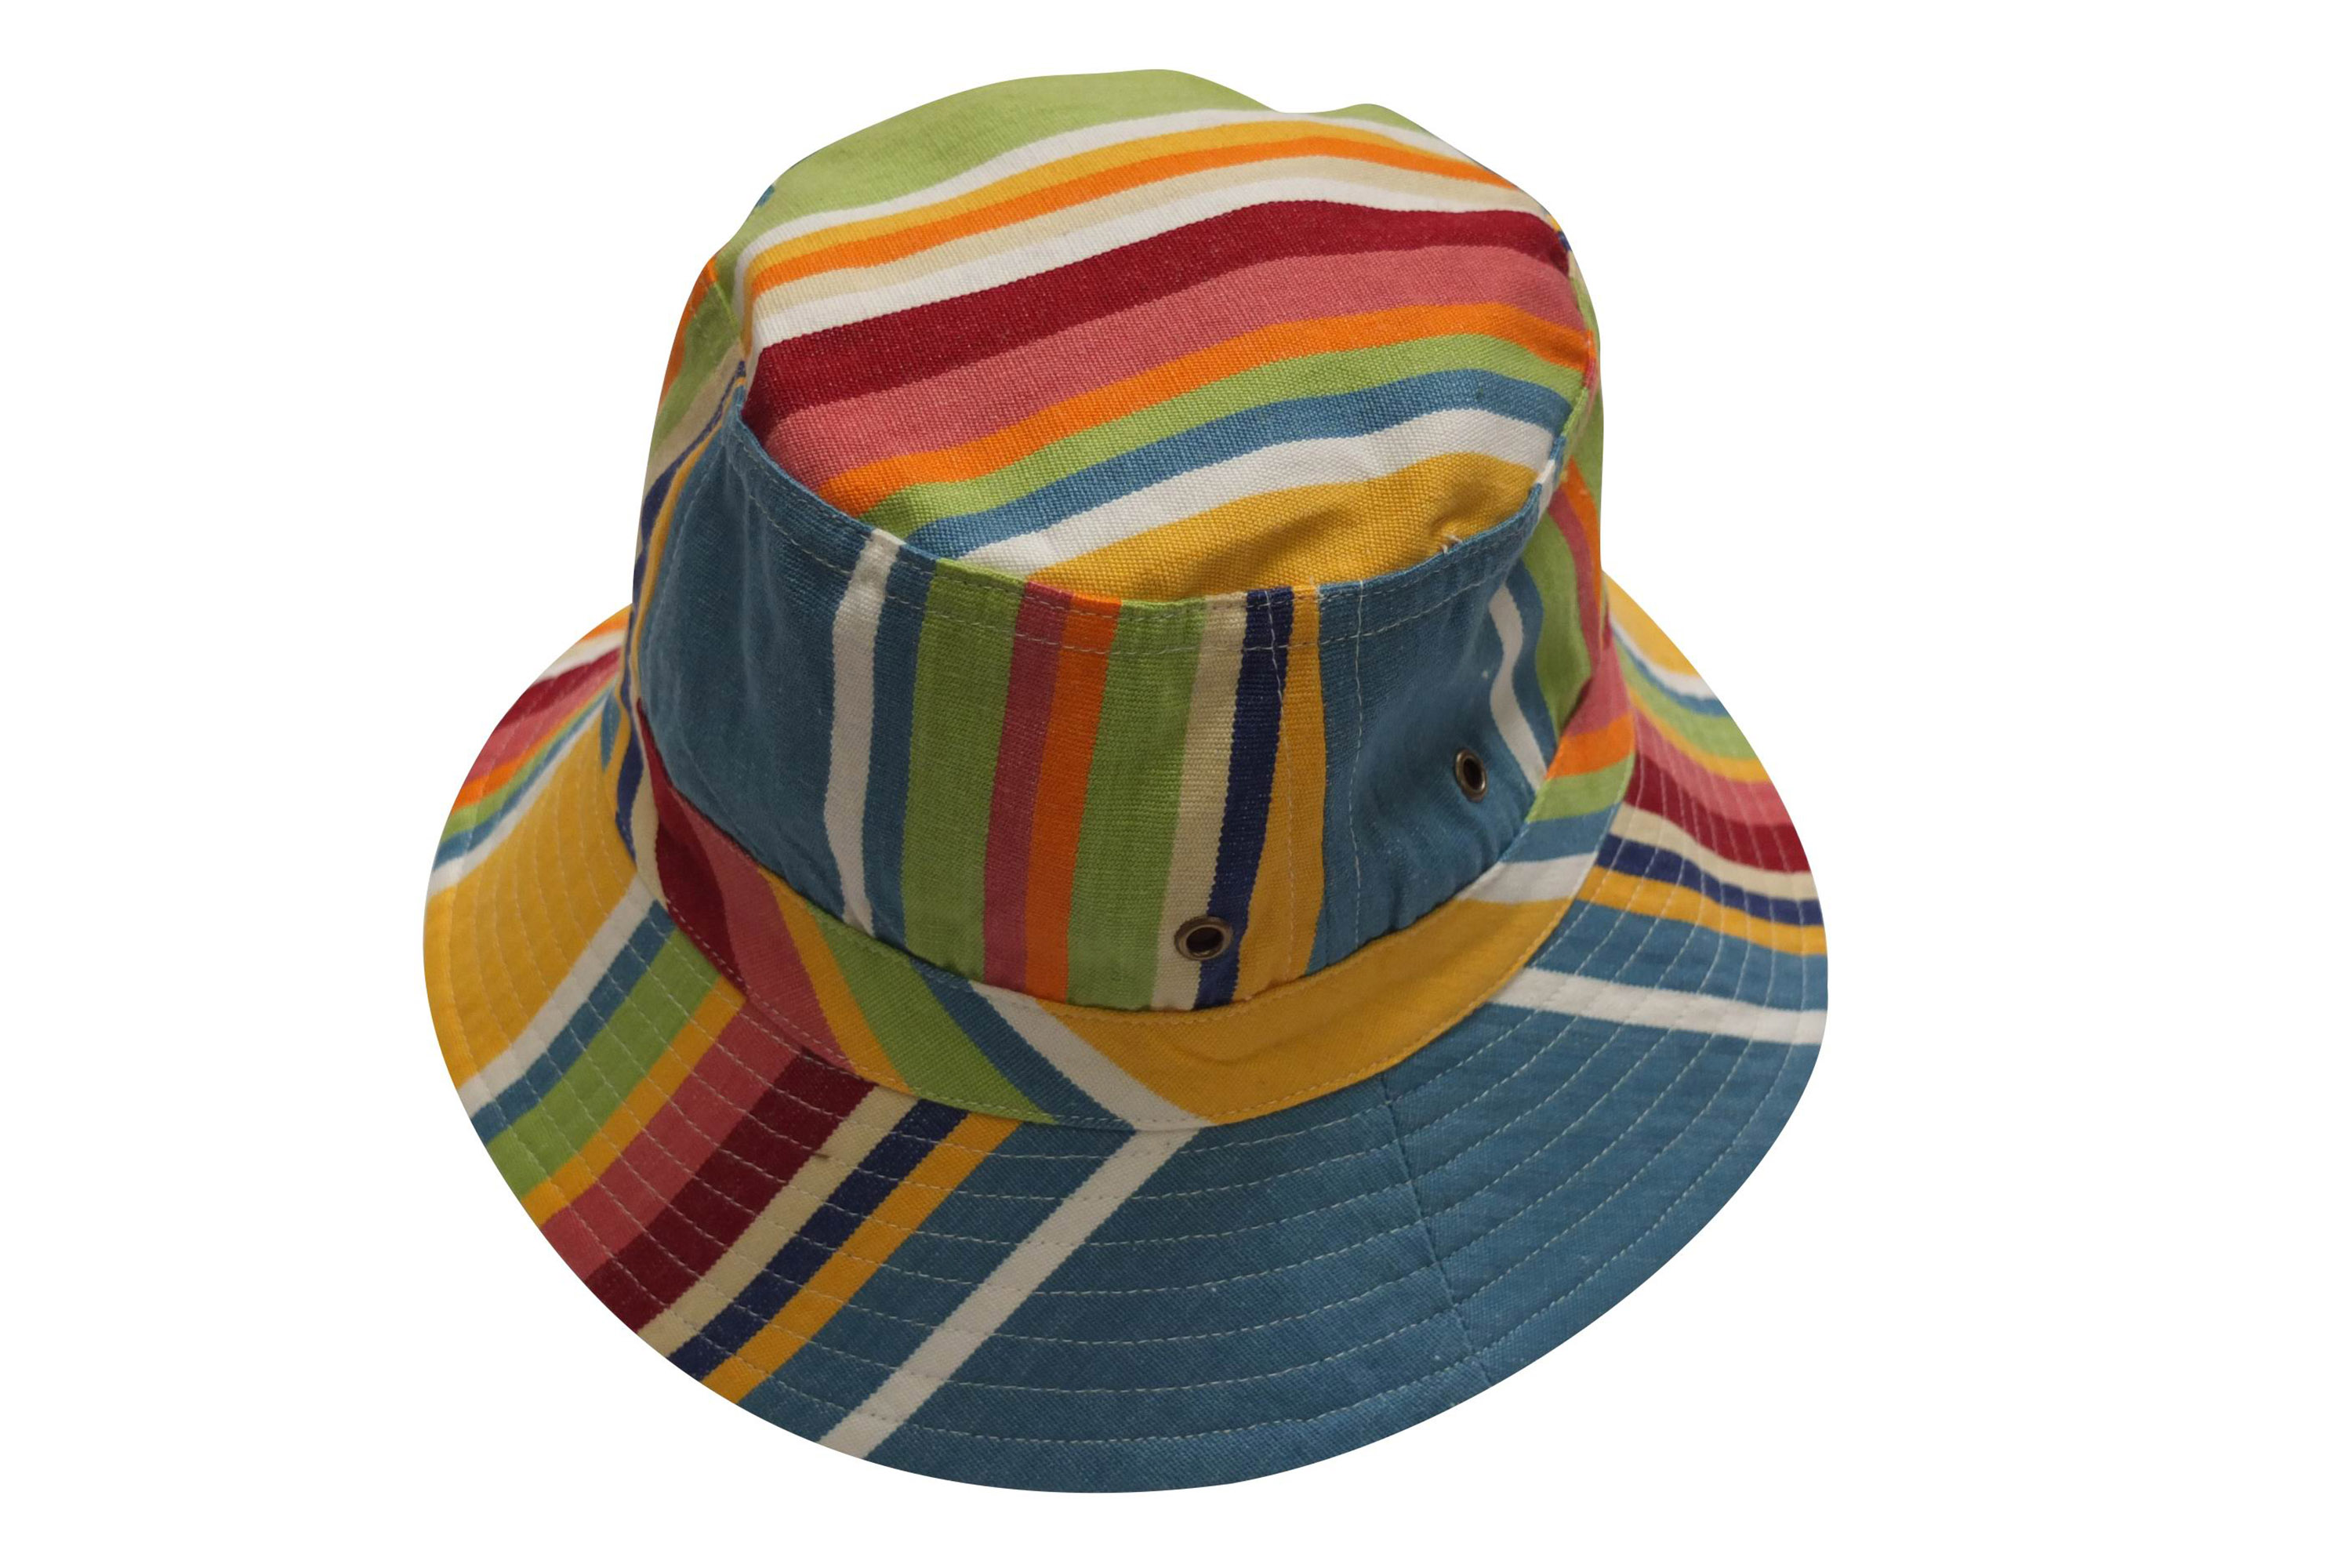 Yellow Striped Sun Hats | Sun Protection Hat  Cricket Yellow Stripes